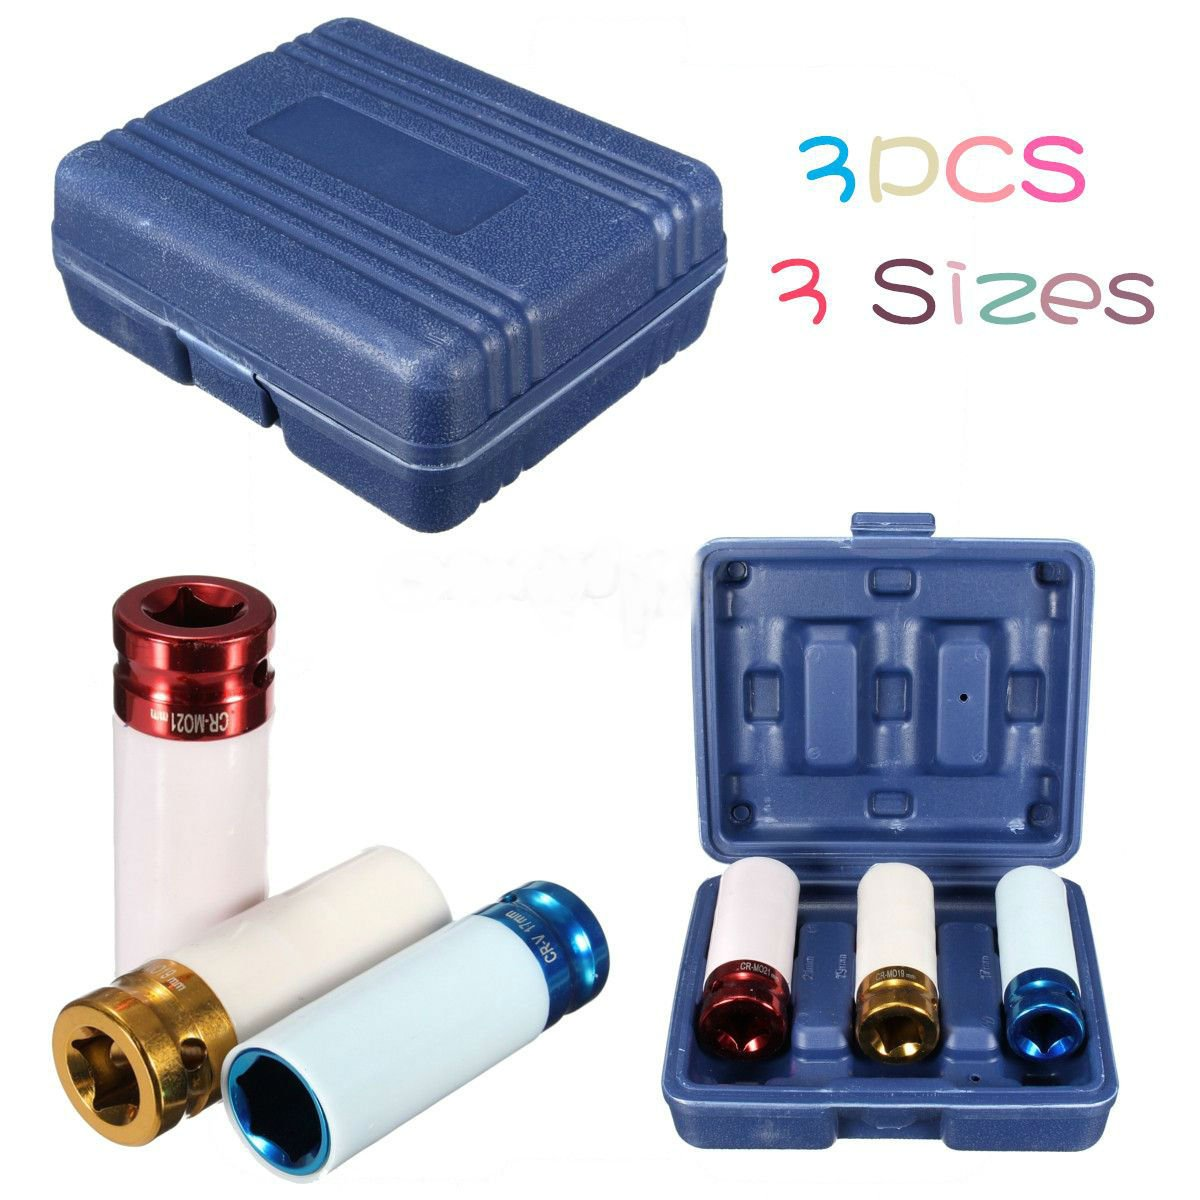 3Pcs Alloy Thin Wall Wheel Nut Deep Impact Socket Drive Set db